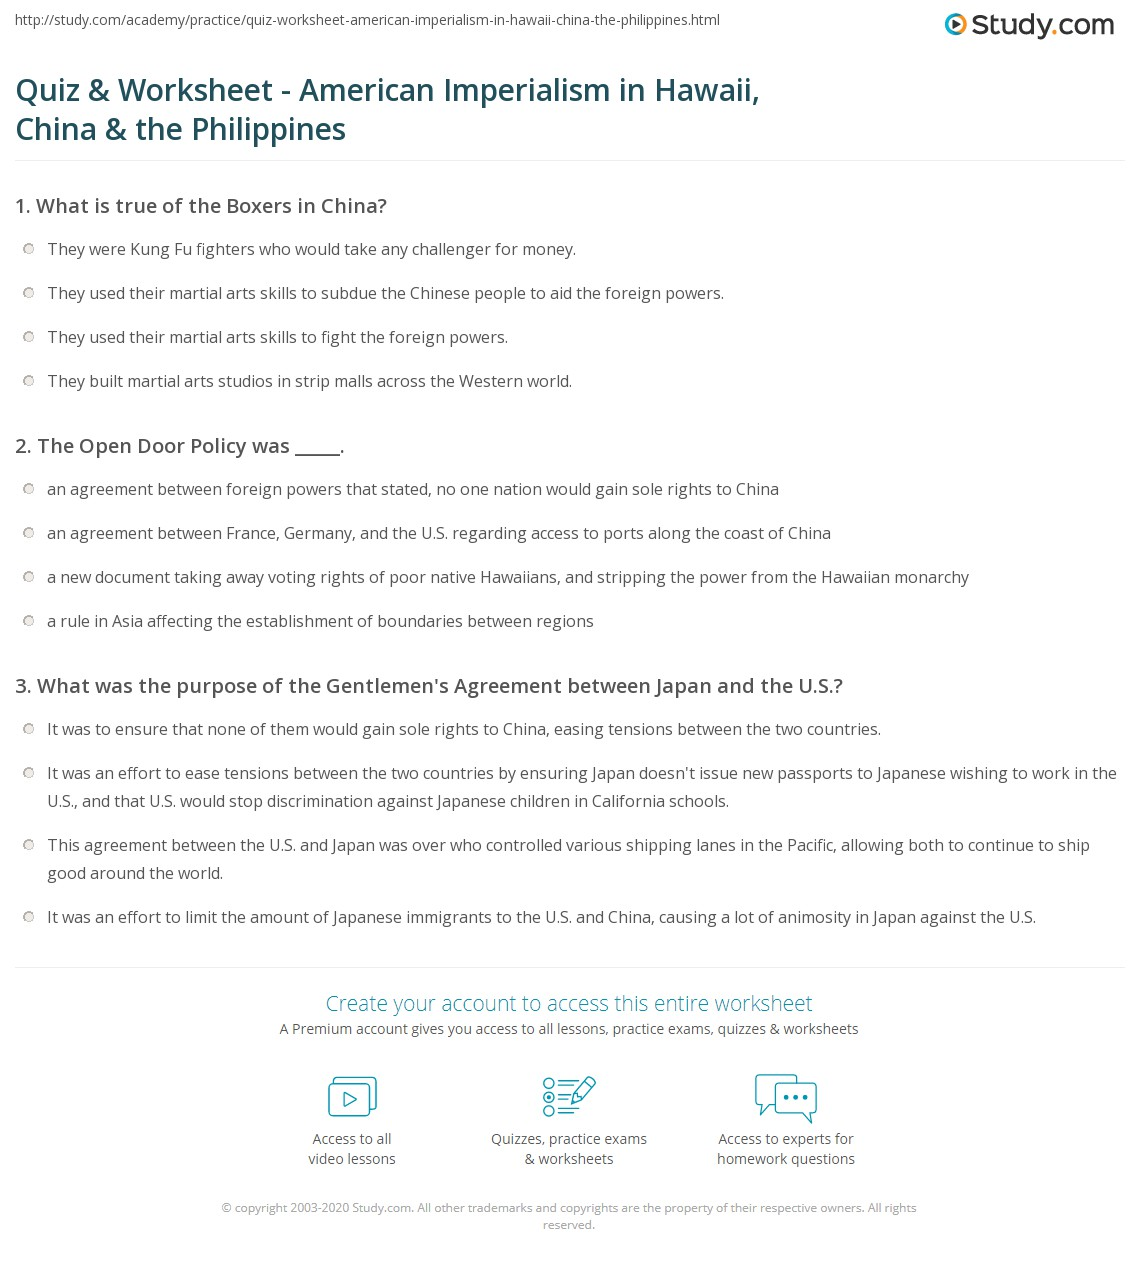 american imperialism worksheet delibertad quiz worksheet american imperialism in hawaii the